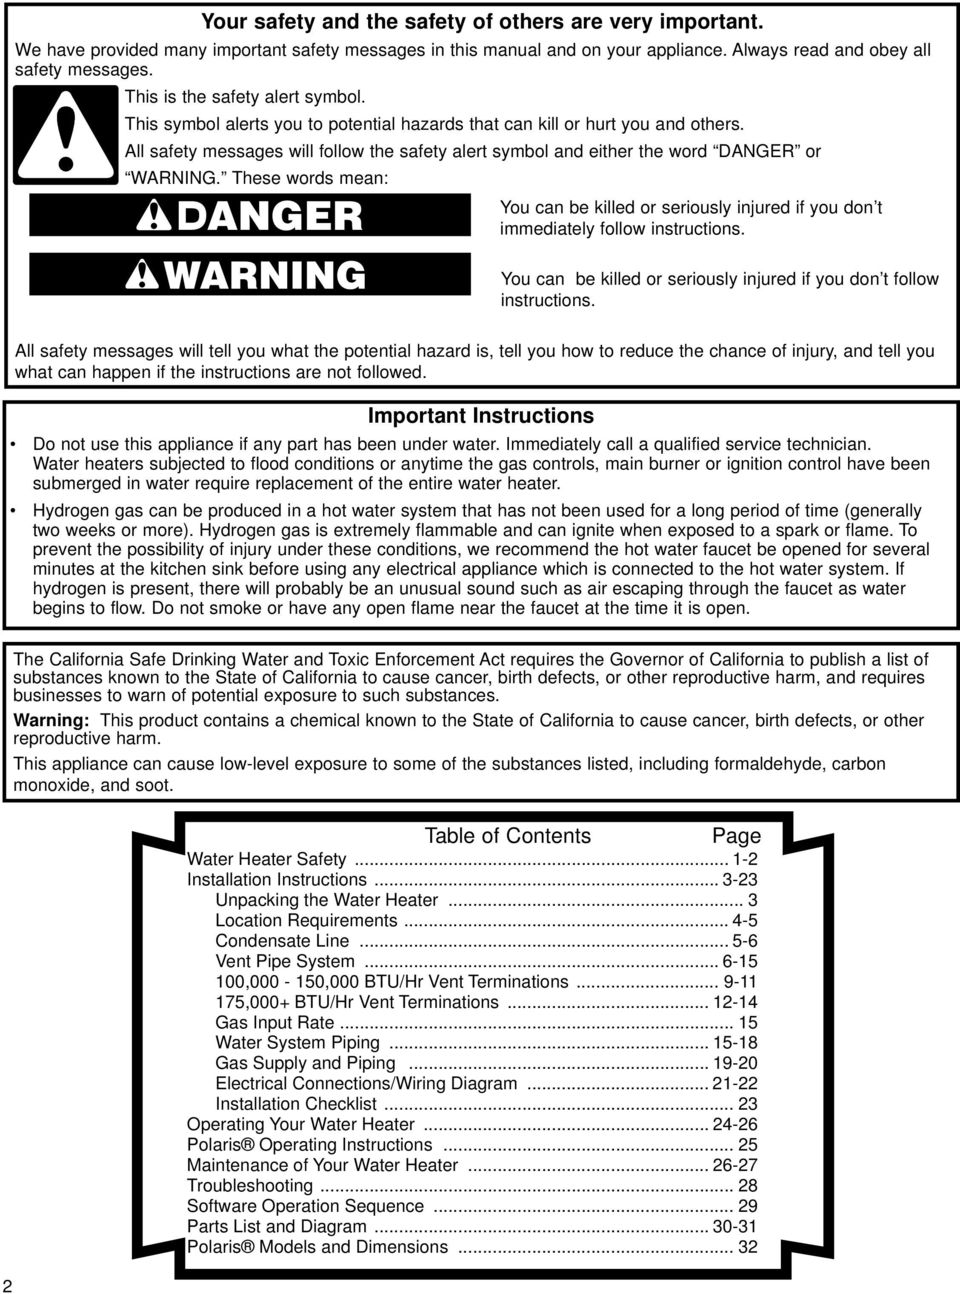 installation instructions and use care guide pdf all safety messages will follow the safety alert symbol and either the word danger or warning